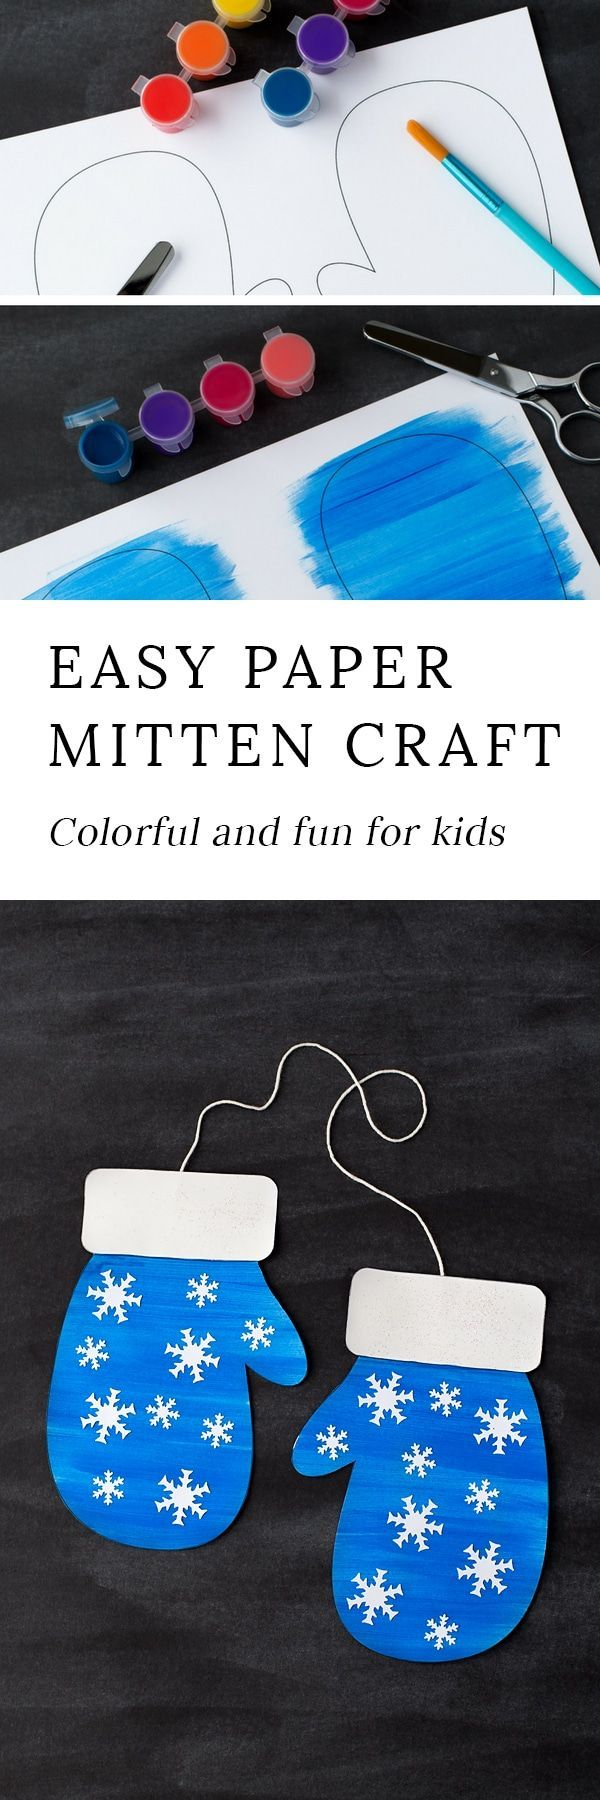 Winter is the perfect season for mitten crafts! Kids of all ages will enjoy using our printable template, washable paint, and craft supplies to create a fun and colorful mitten craft at home or school. via @https://www.pinterest.com/fireflymudpie/ #artsandcraftsforboys